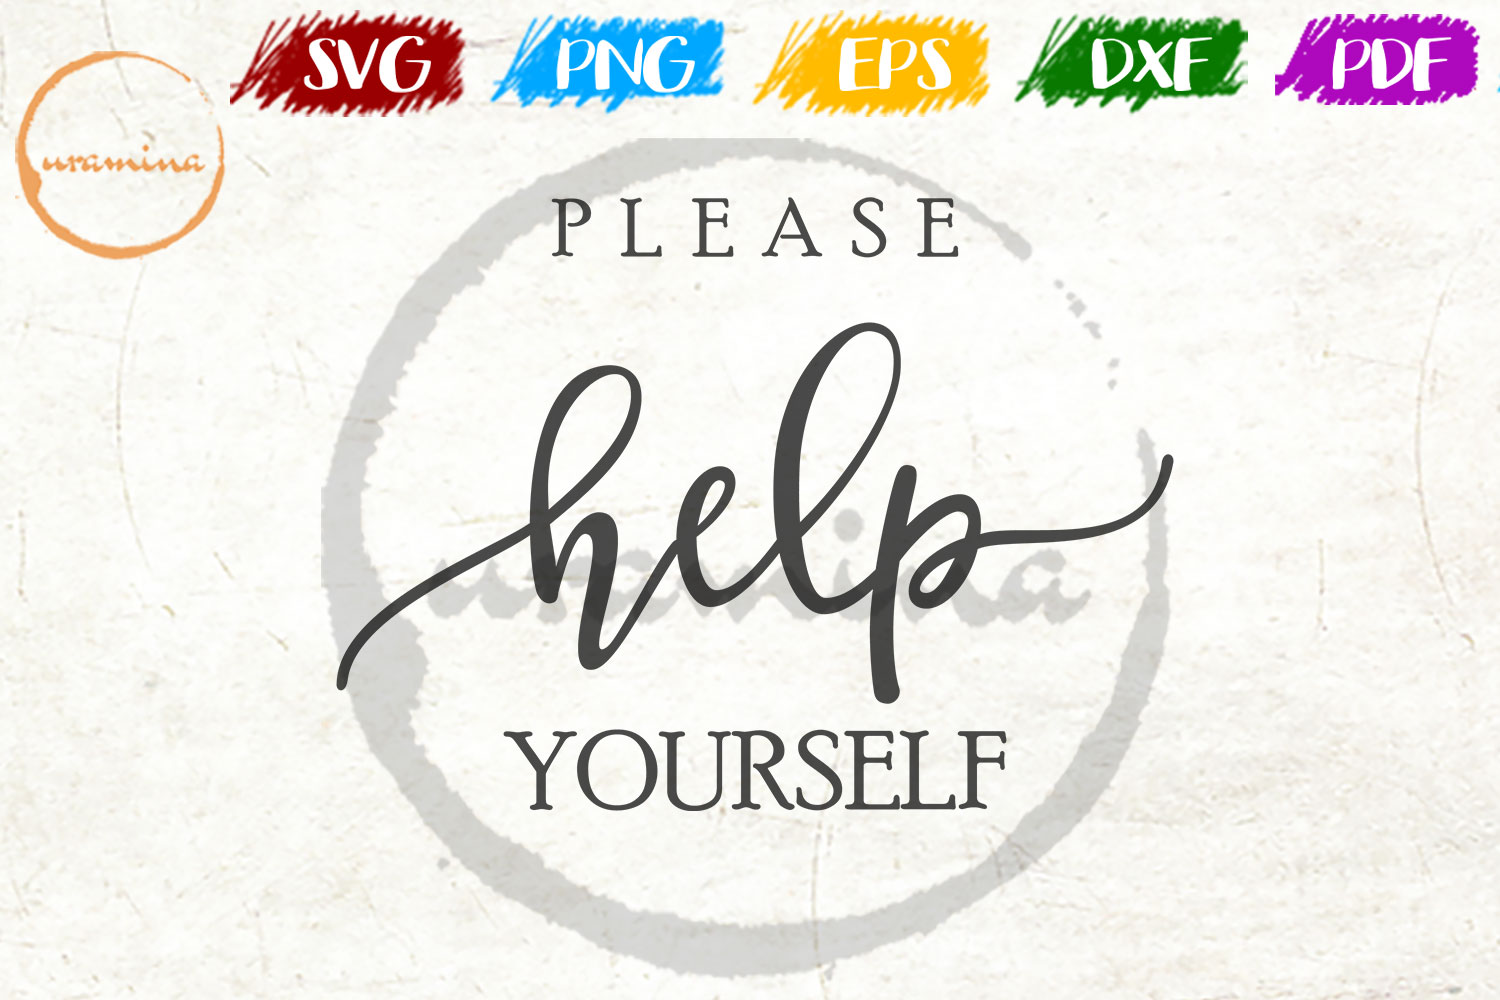 Download Free Please Help Yourself Graphic By Uramina Creative Fabrica for Cricut Explore, Silhouette and other cutting machines.